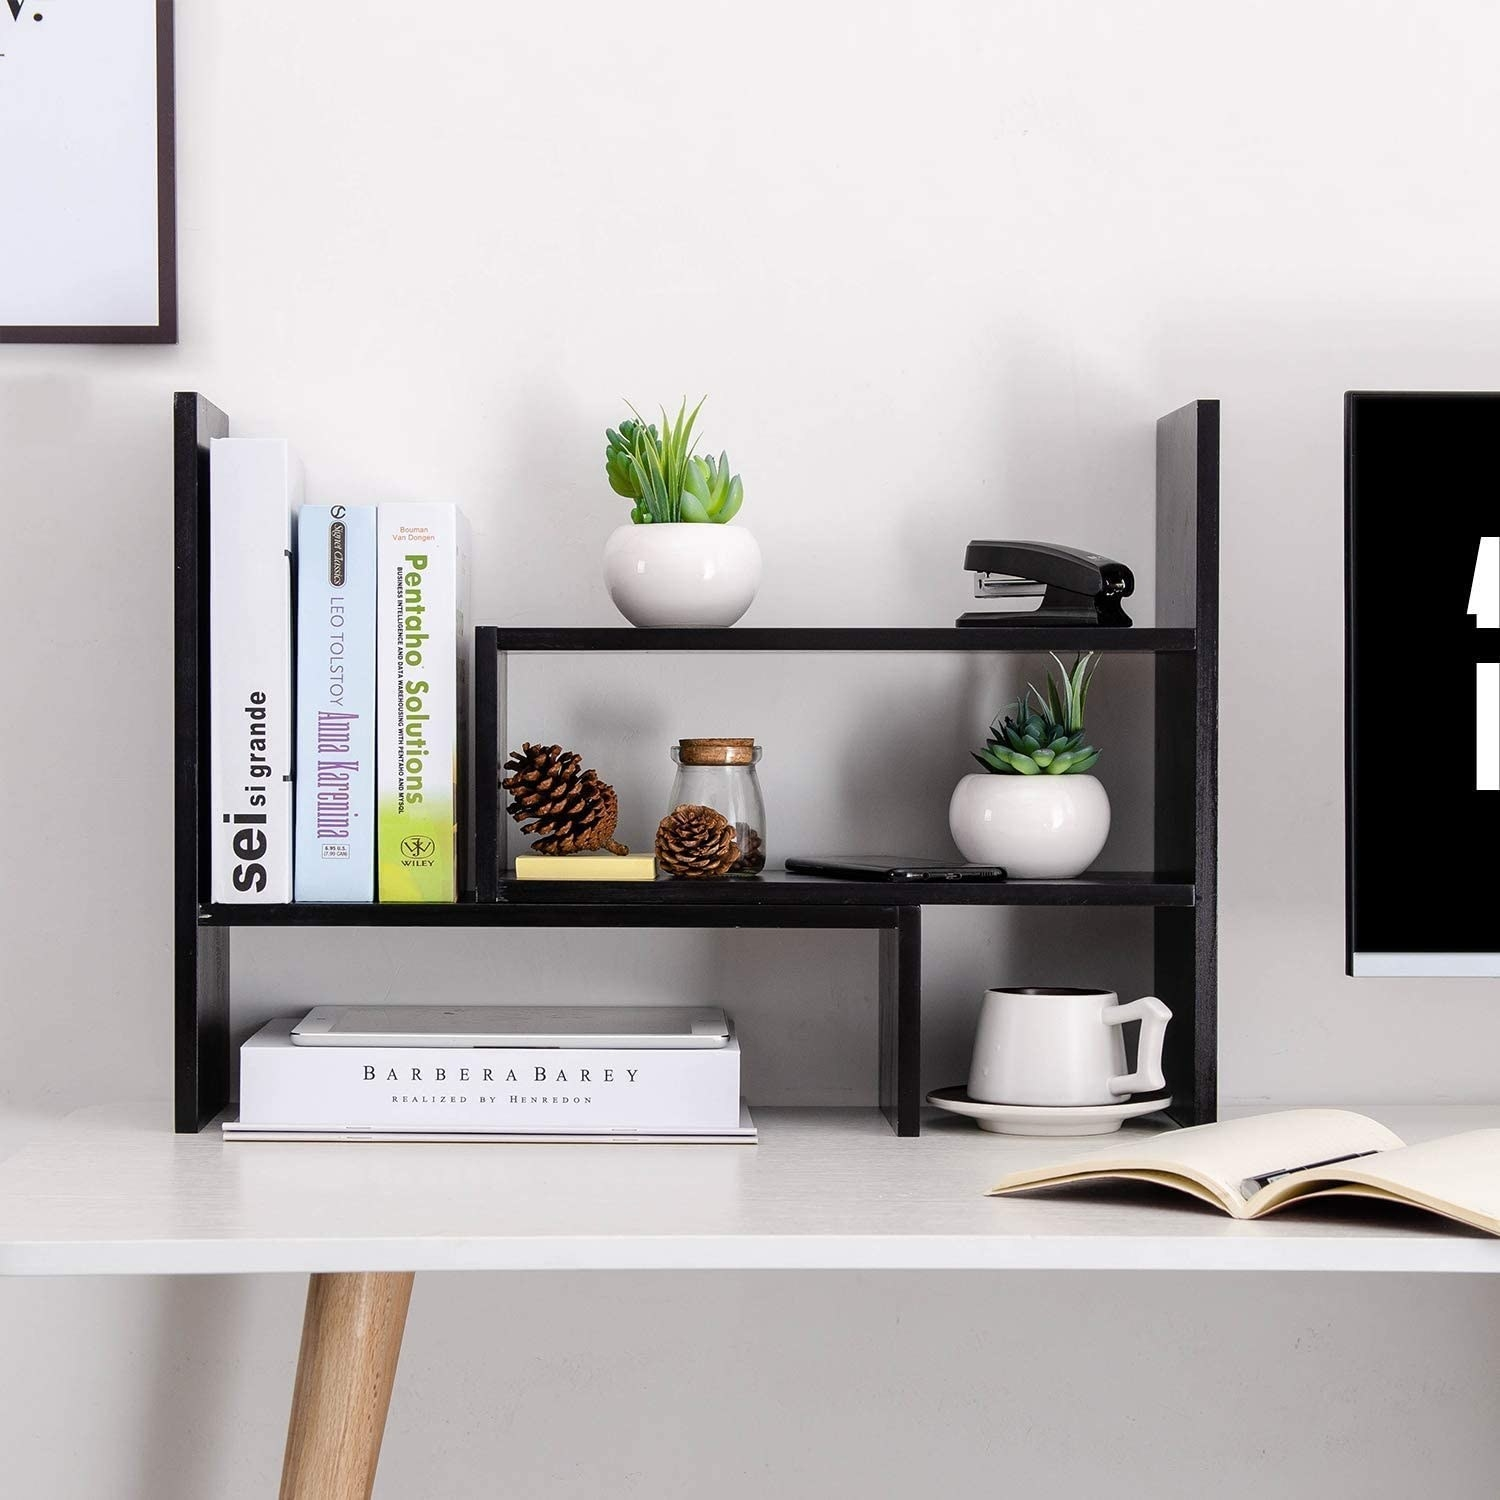 A small adjustable desk organizer with multiple shelves in a tiled pattern A set of books, plants, and other desk knickknacks sit on the shelves